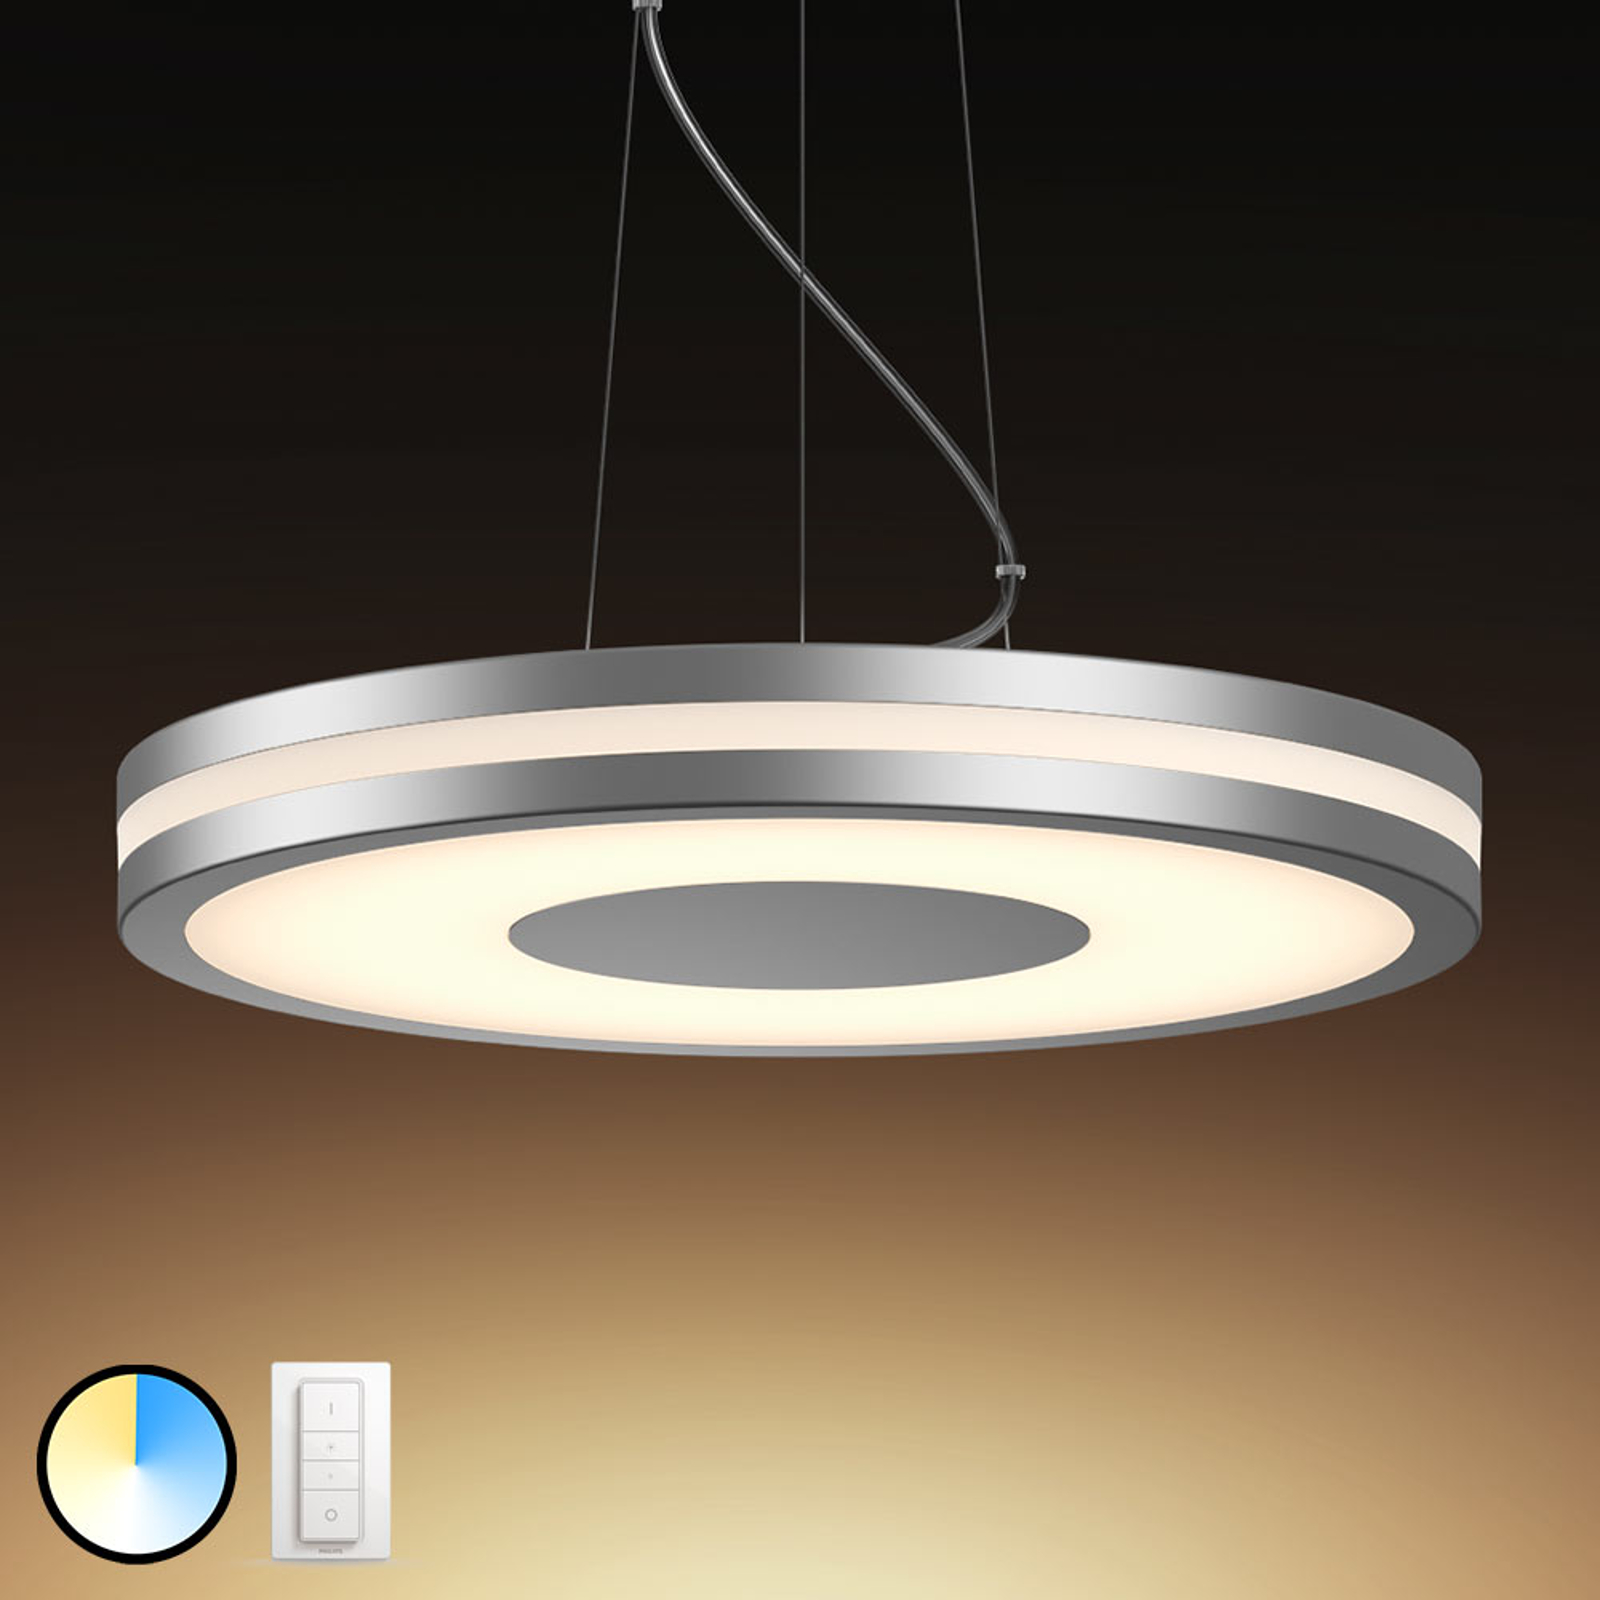 Philips Hue Being lampa wisząca LED, aluminium